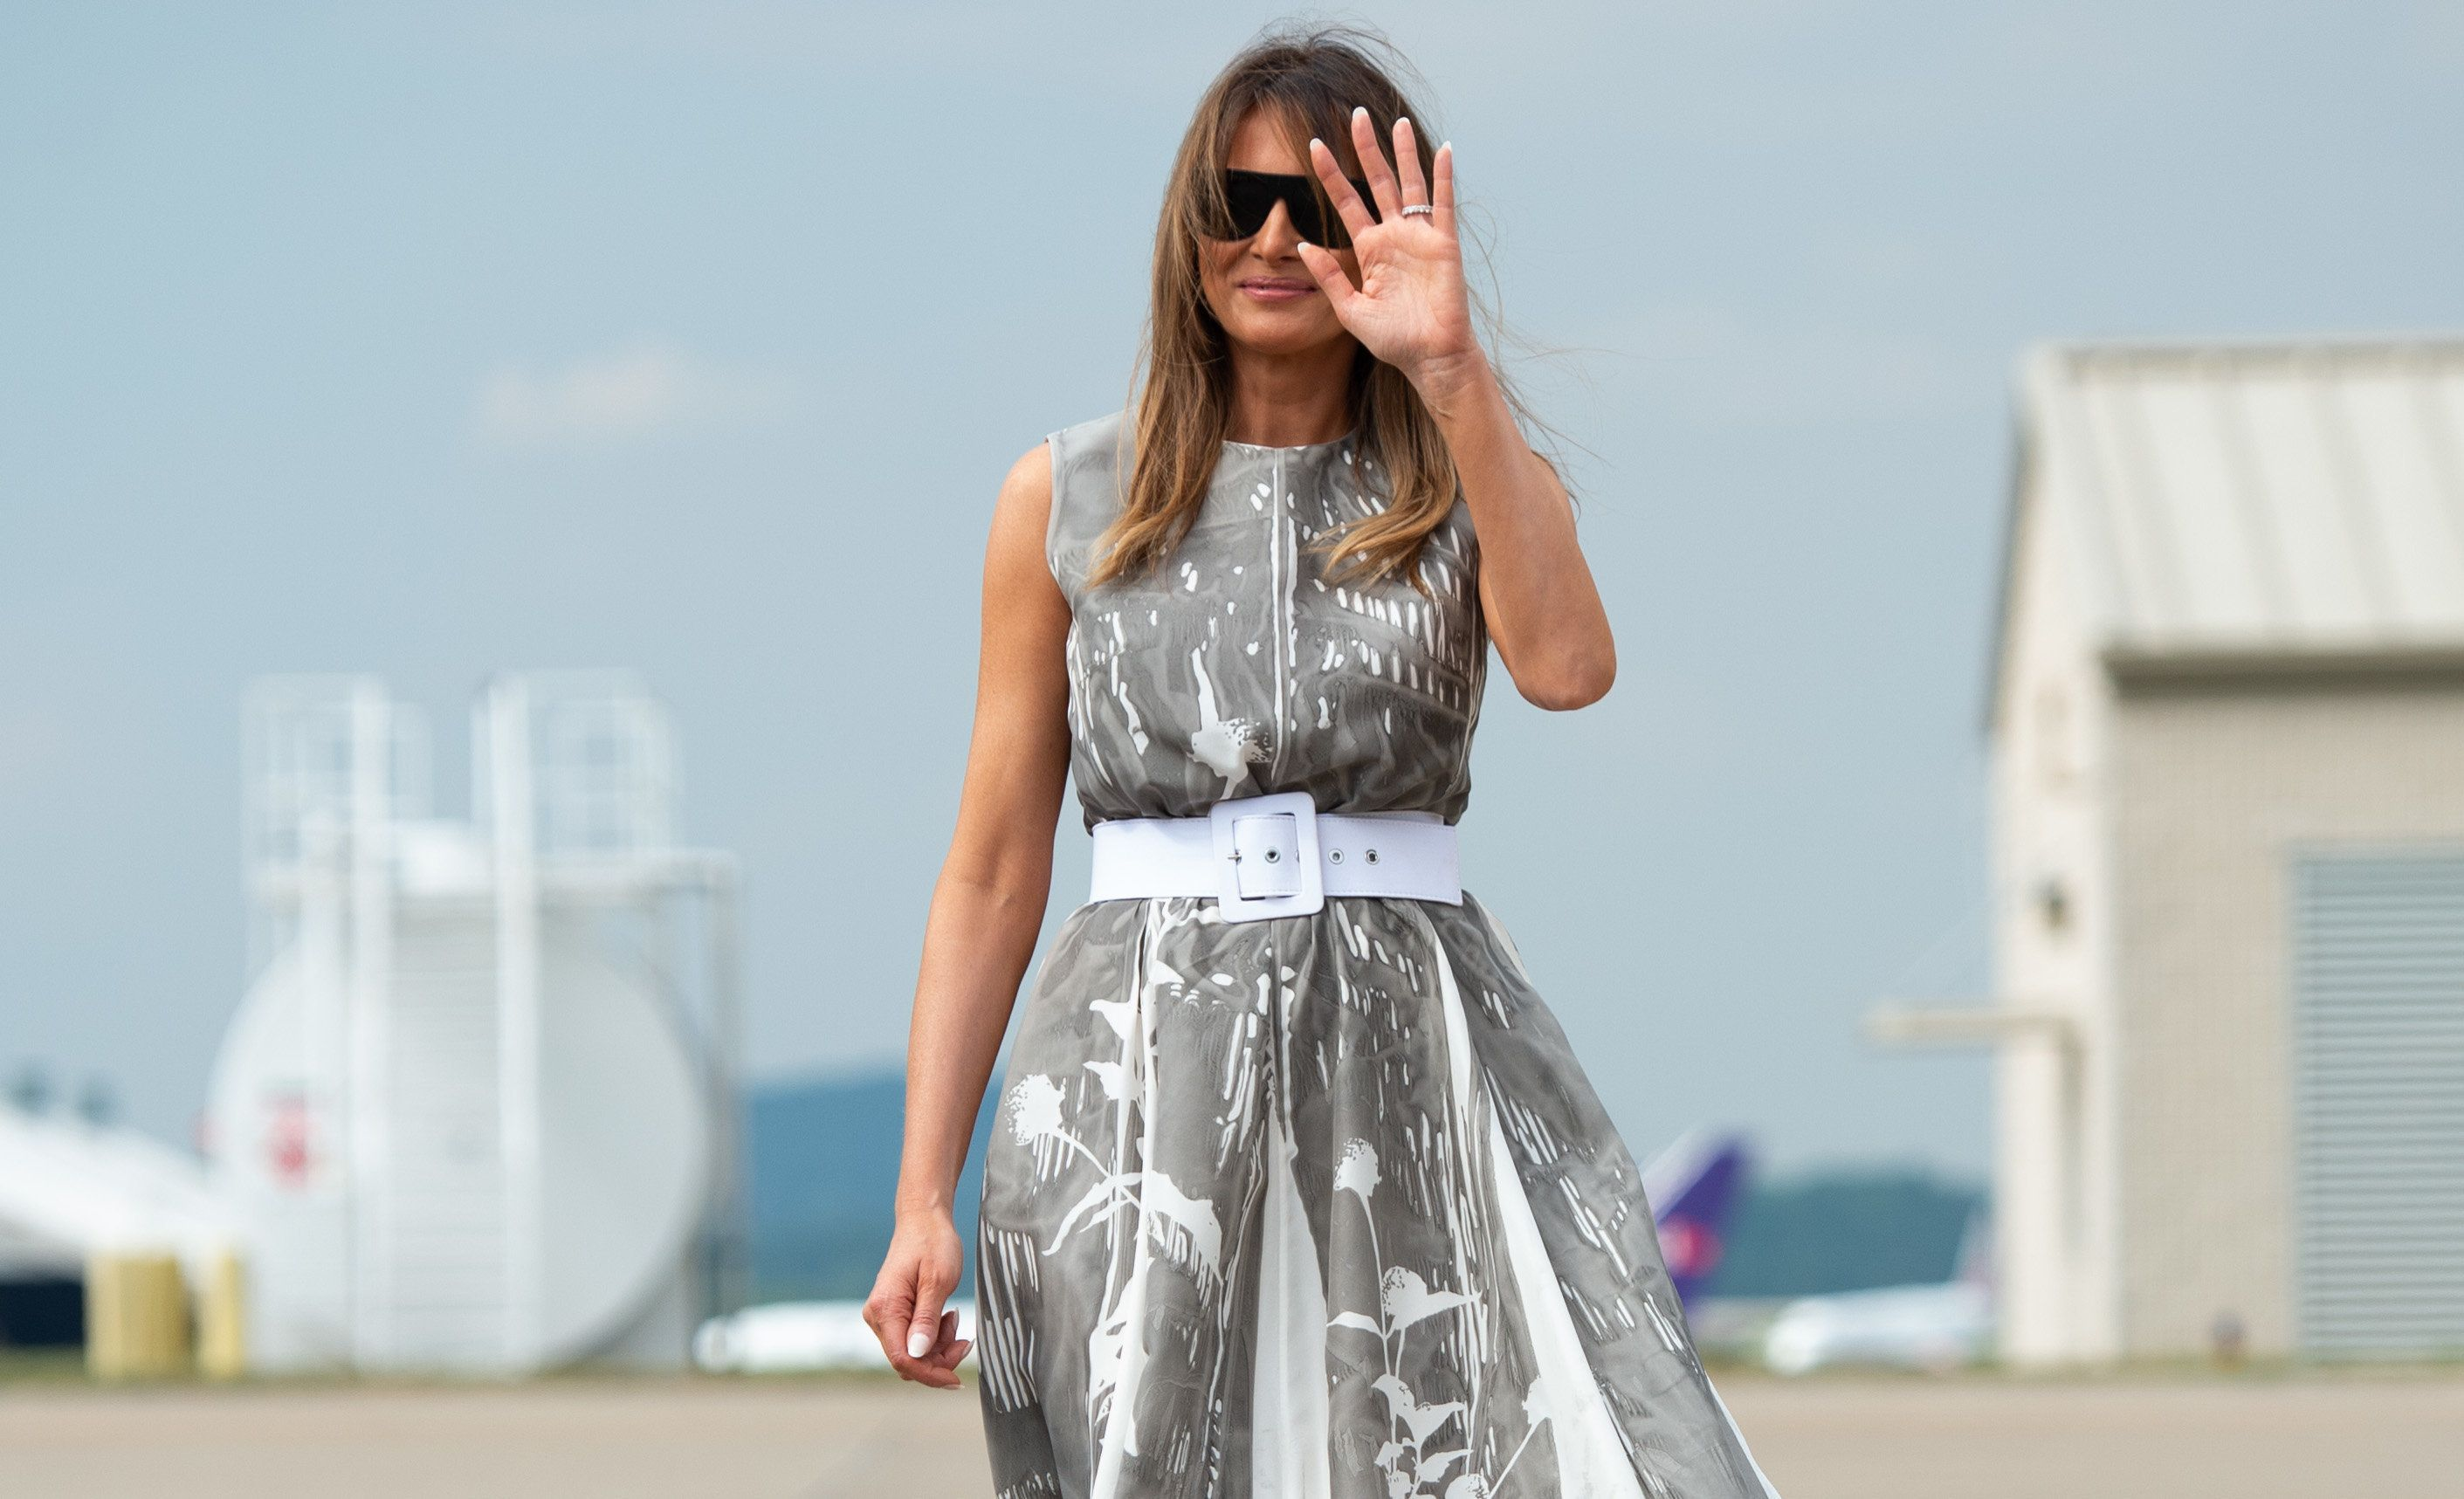 US First Lady Melania Trump walks to board a military airplane prior to departure from Nashville International Airport in Nashville, Tennessee, July 24, 2018, following her visit to a children's hospital as part of her 'Be Best' campaign. (Photo by SAUL LOEB / AFP)        (Photo credit should read SAUL LOEB/AFP/Getty Images)